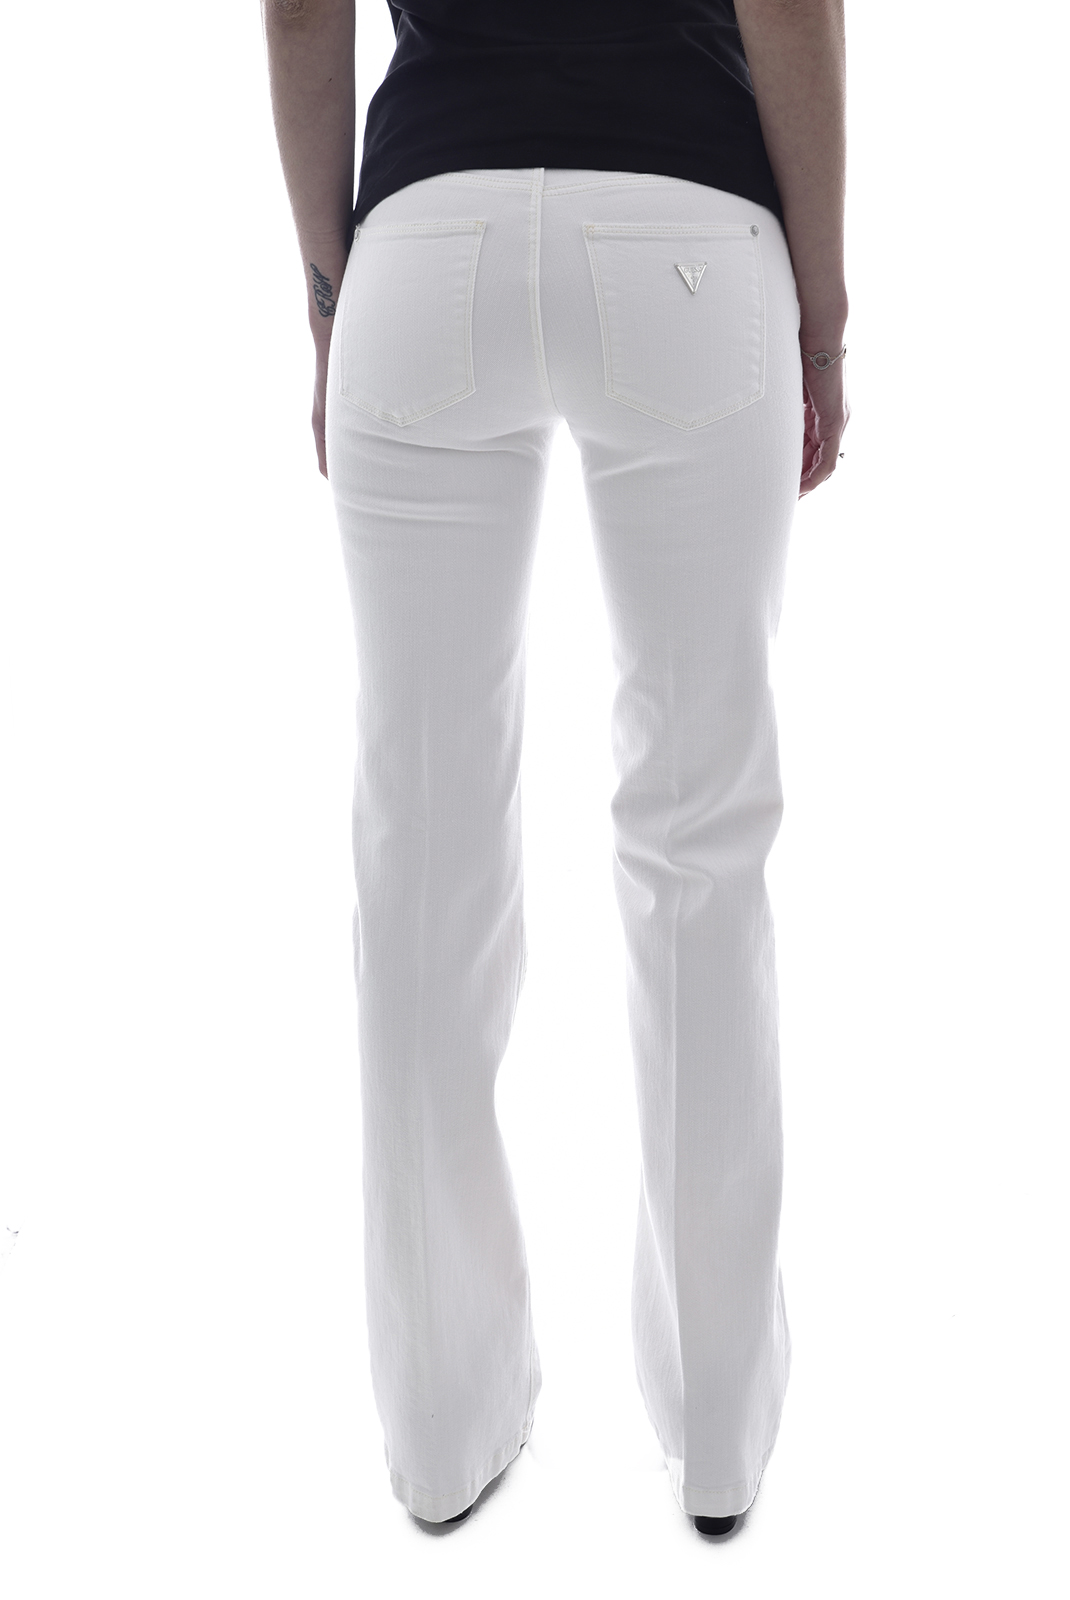 Jeans   Guess jeans W02A58 D2G6I SEXY BOOT JUWHJUNGLE WHITE